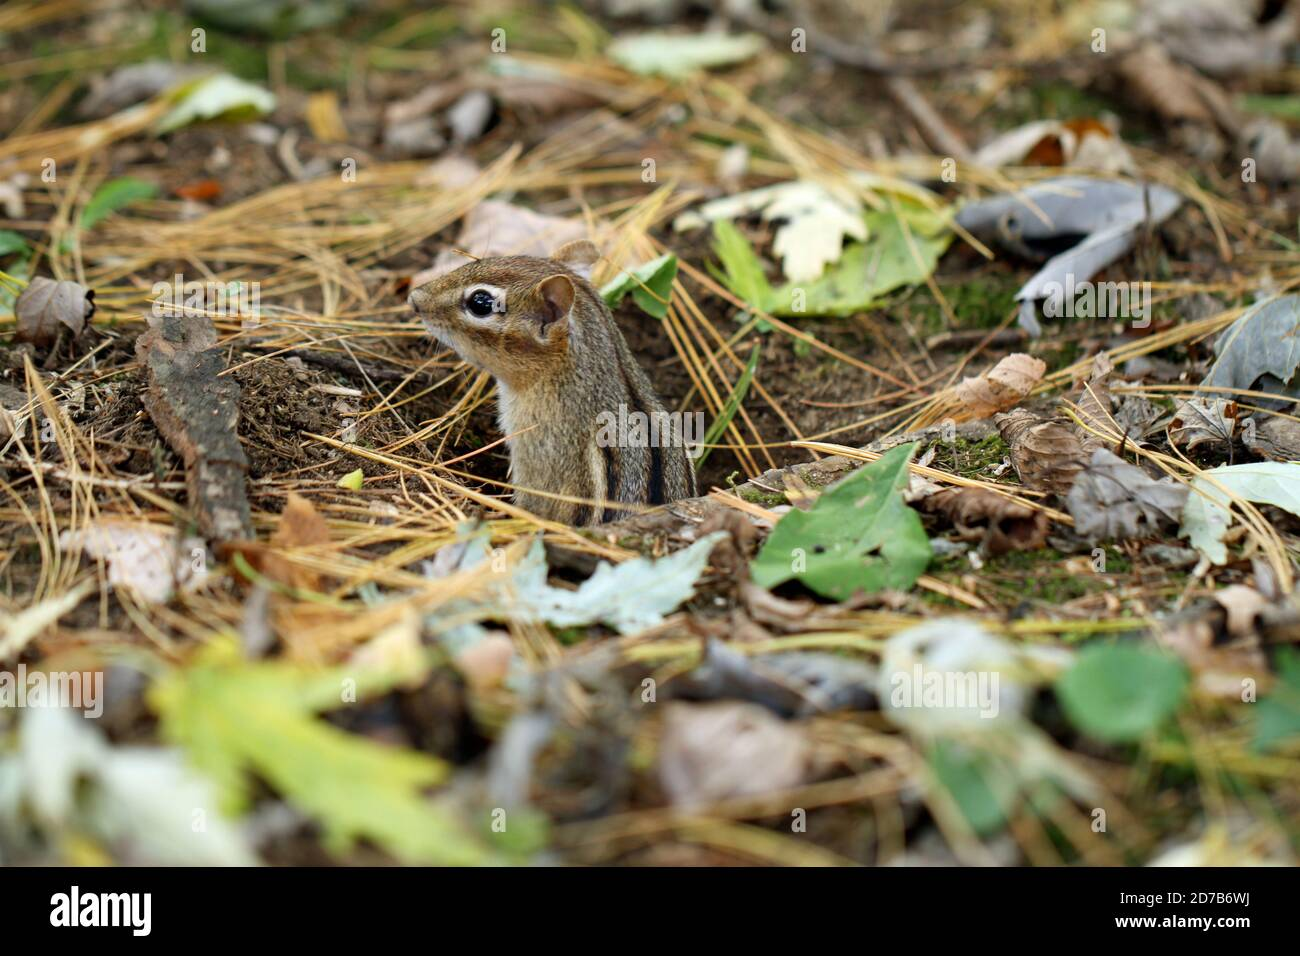 A well-camouflaged Eastern chipmunk (Tamias striatus) emerging from its underground burrow in autumn in New England Stock Photo